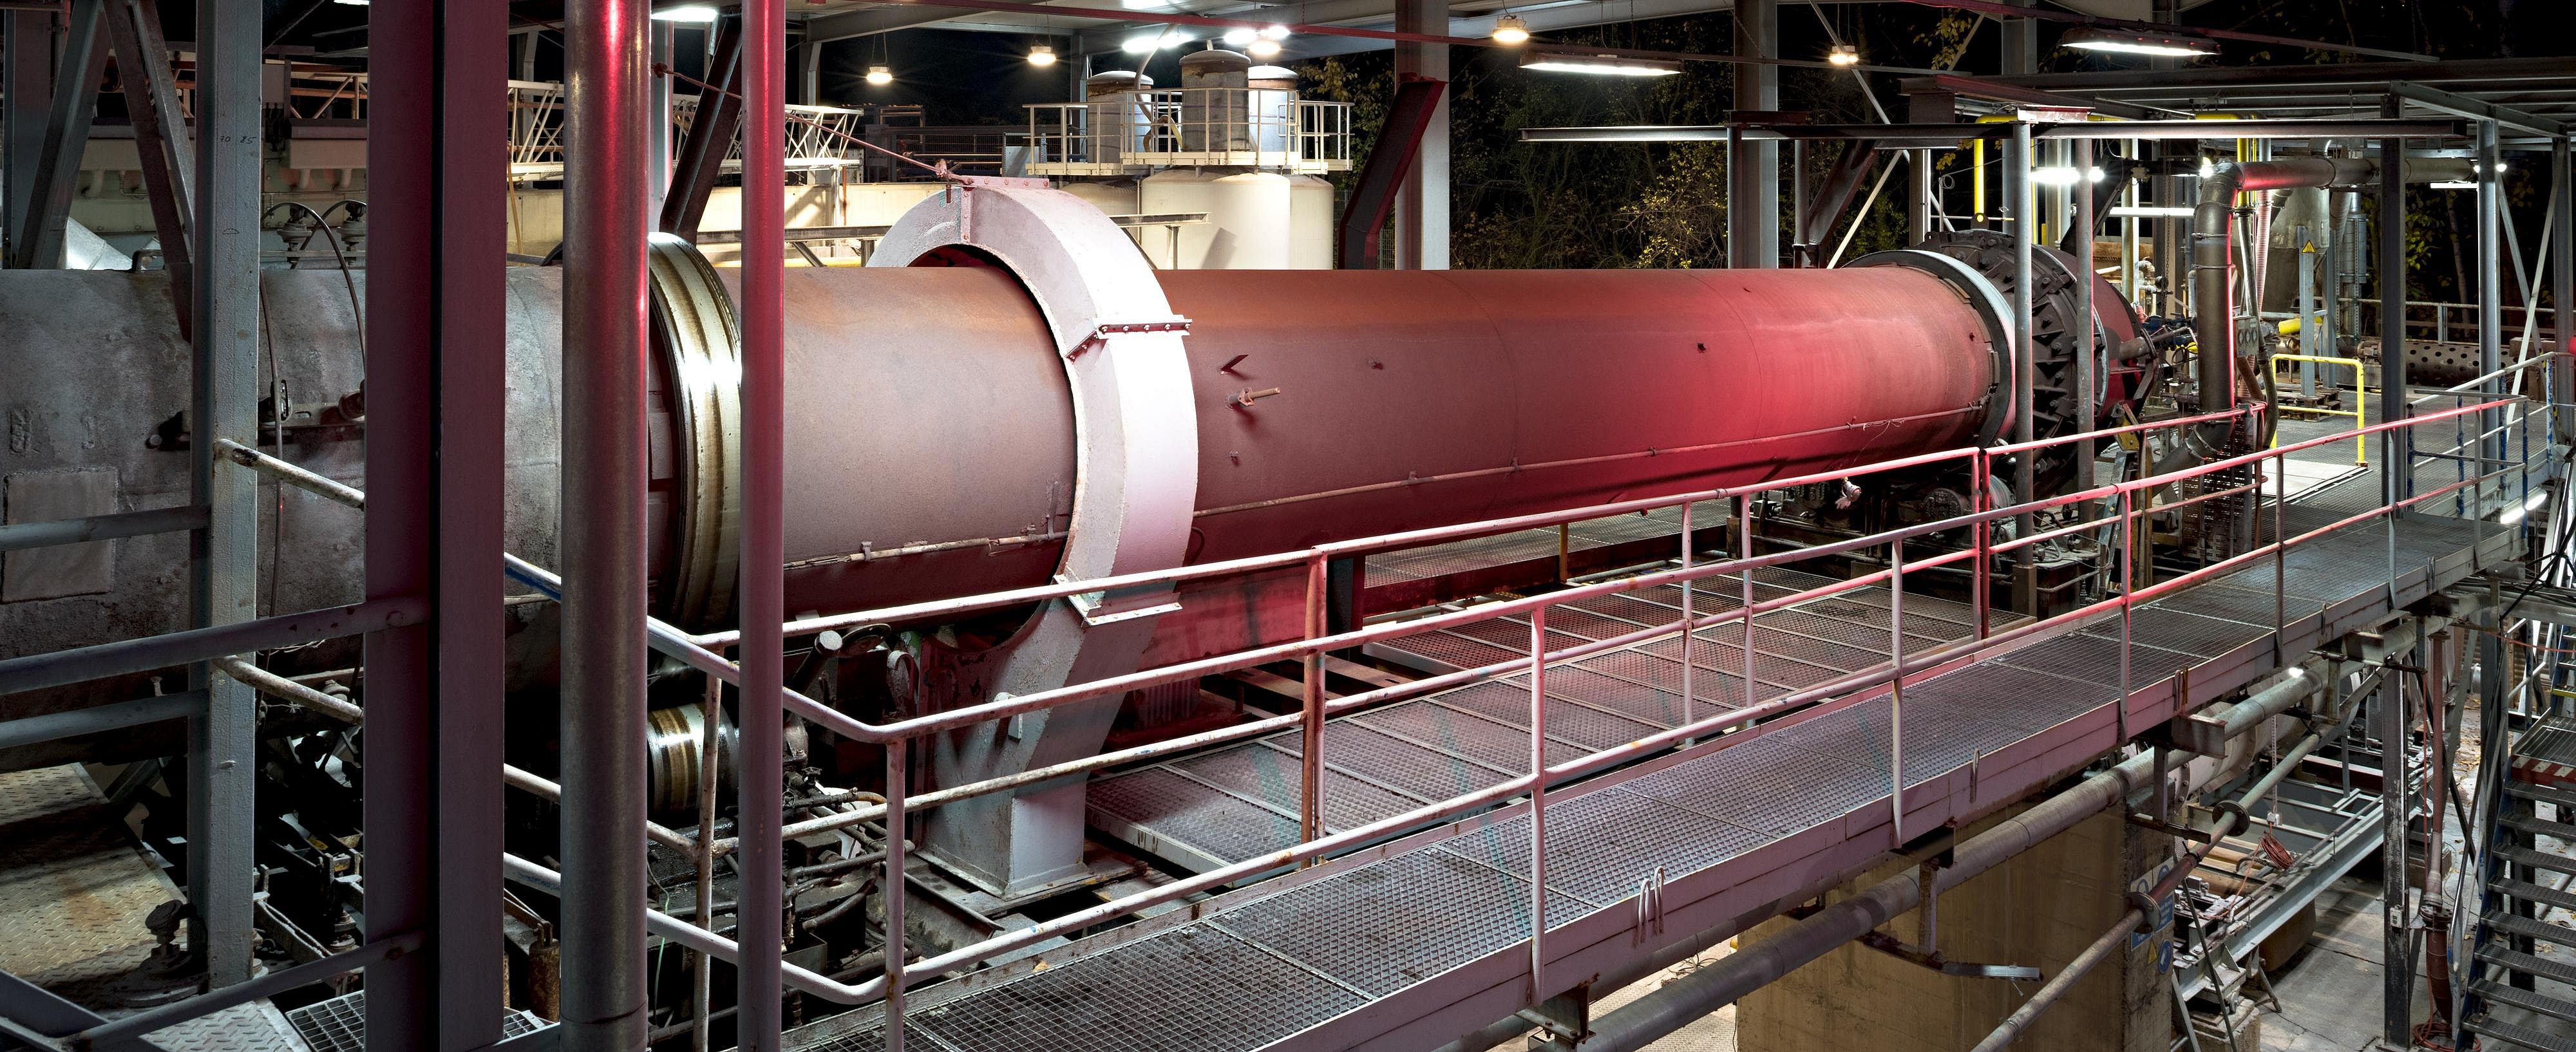 Design features of rotary kilns